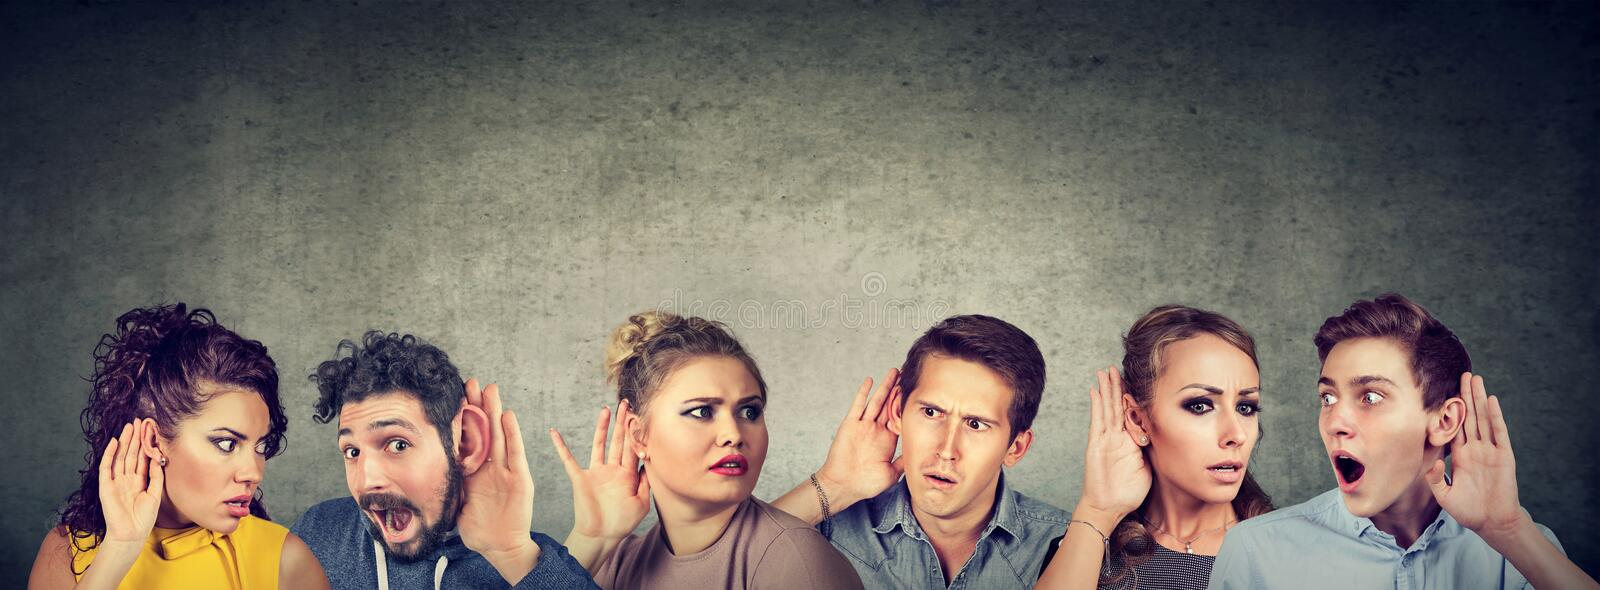 Funny looking gossip people communicating royalty free stock photography